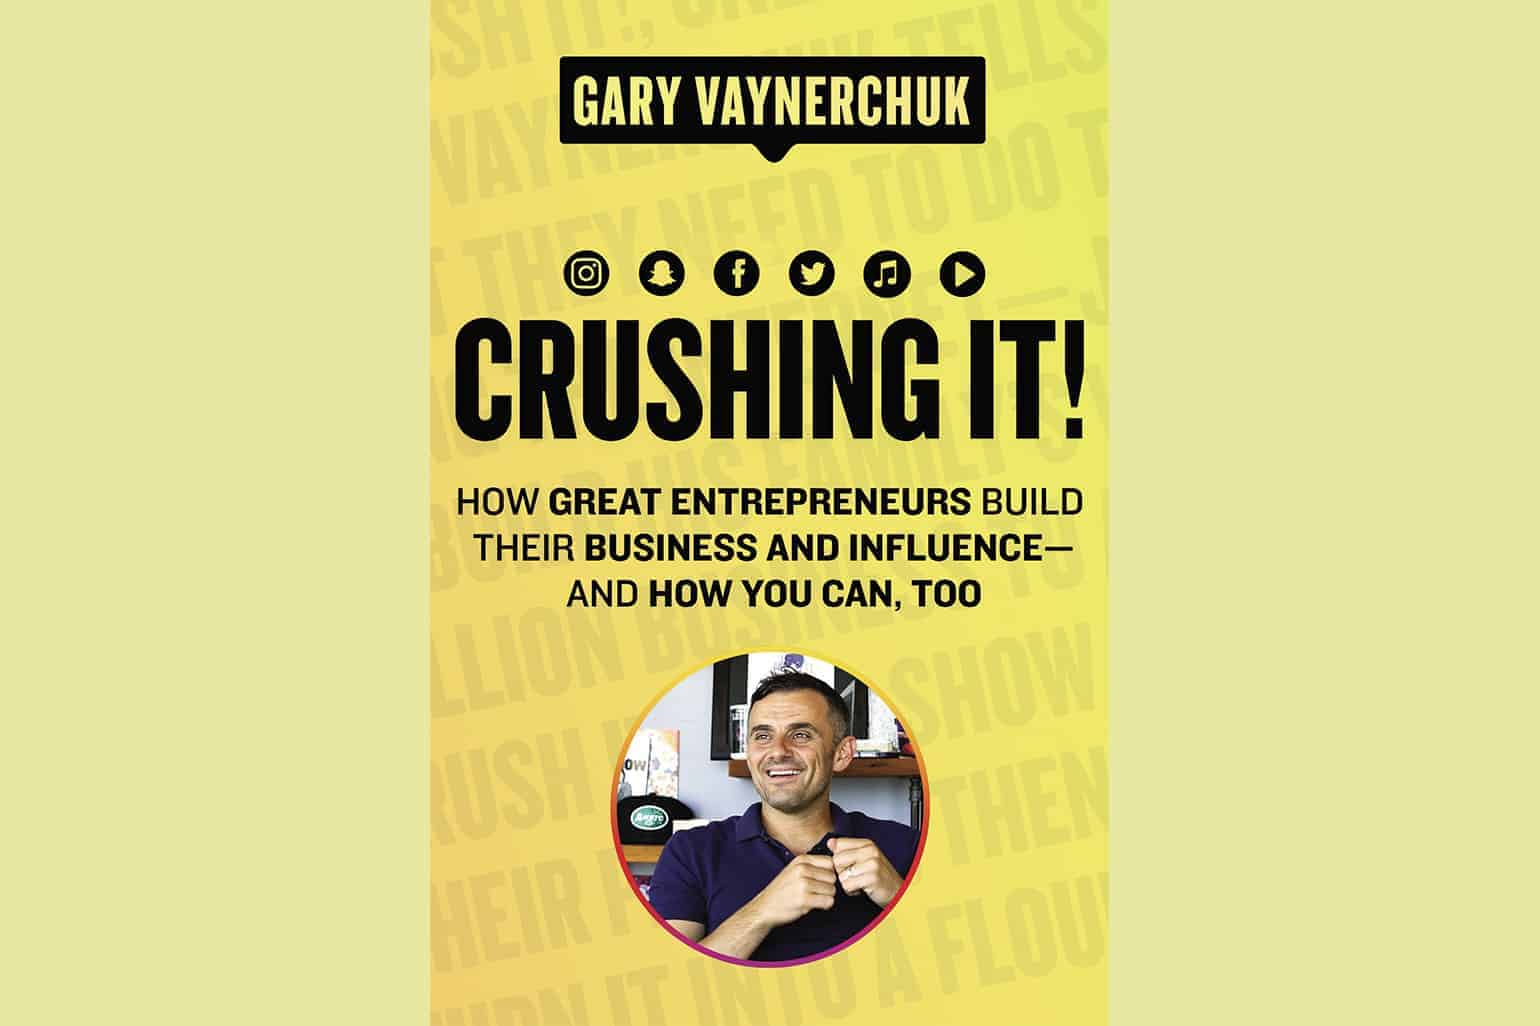 Crush It Why NOW Is The Time To Cash In On Your Passion By Gary Vaynerchuk